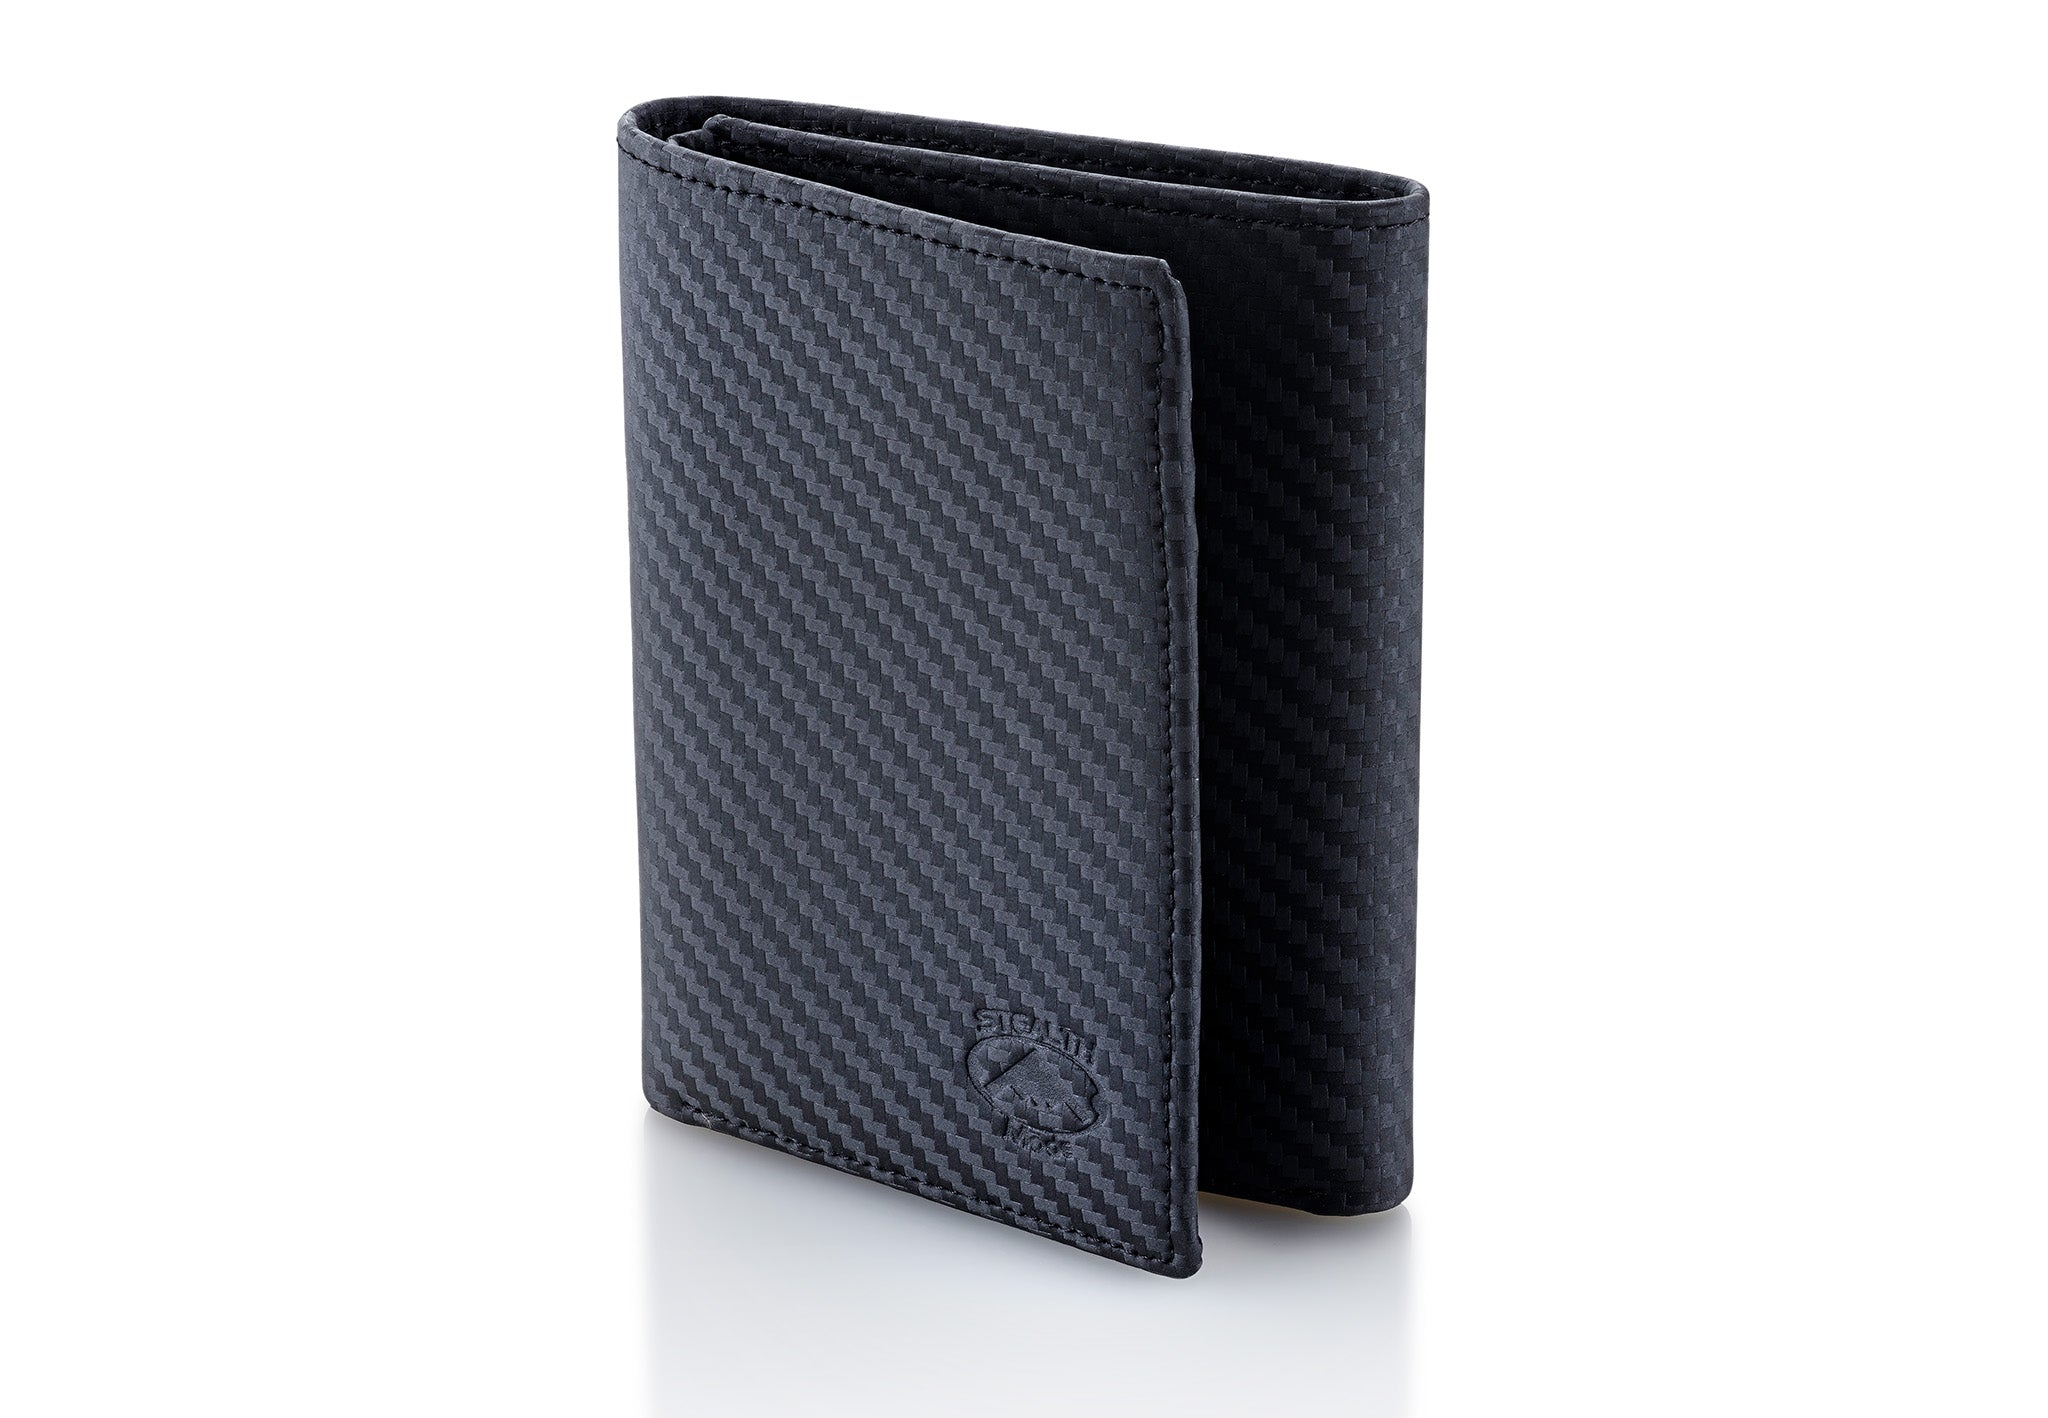 a159df58509f Stealth Mode Trifold RFID Blocking Carbon Fiber Wallet for Men